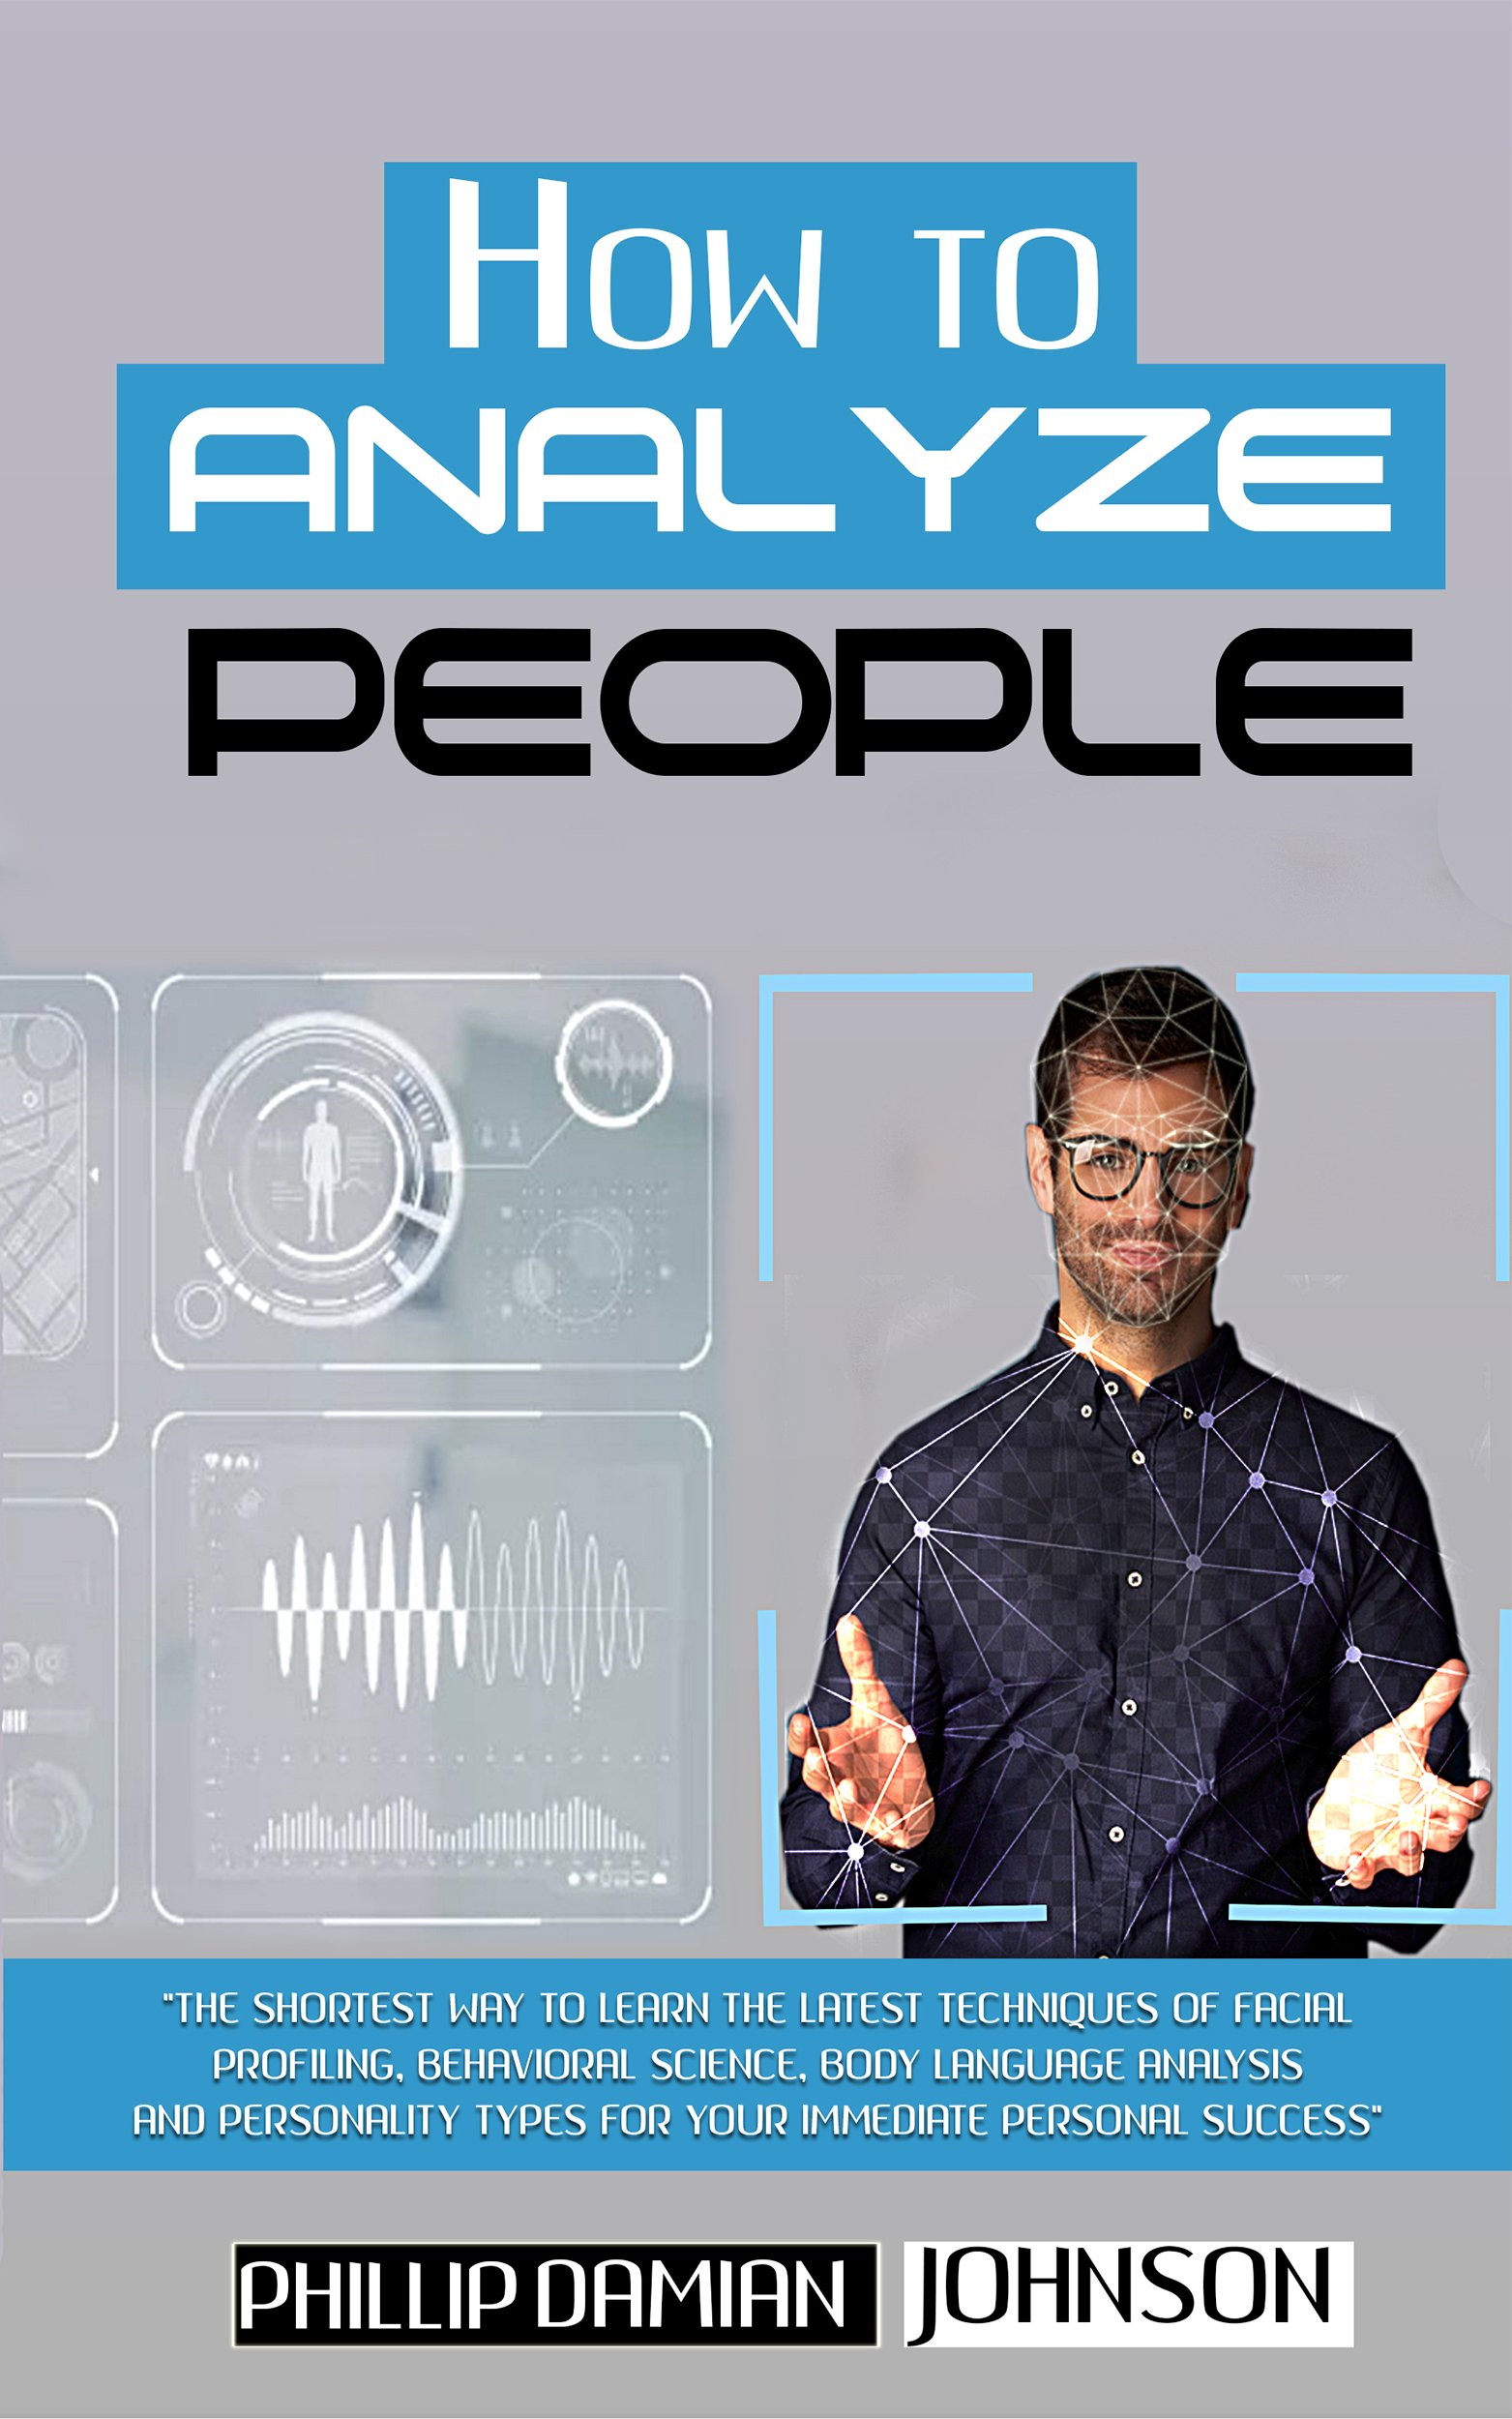 Download How To Analyze People: The Shortest Way To Learn The Latest Techniques Of Facial Profiling, Behavioral Science, Body Langu... 